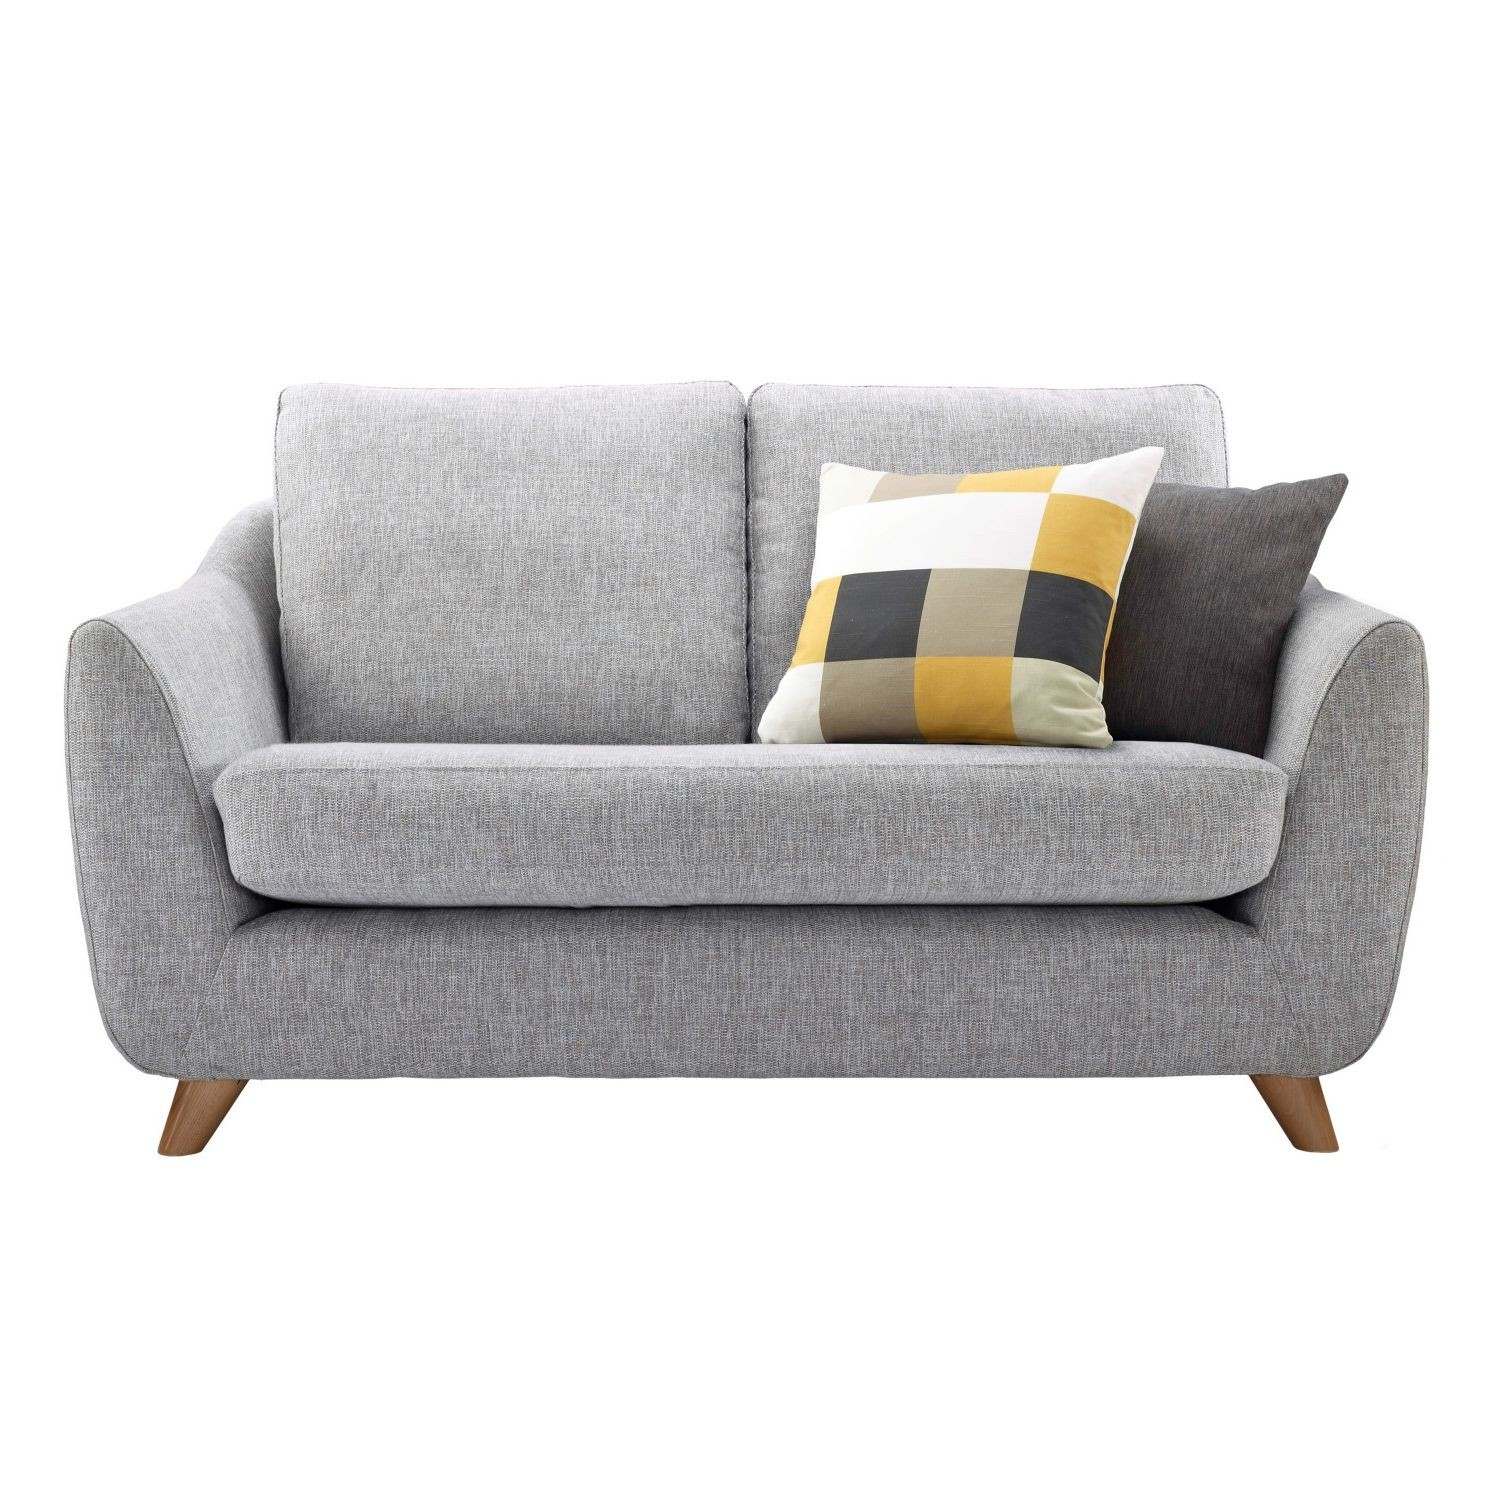 Lovely Small Sofas For Sale Photograph Modern Sofa